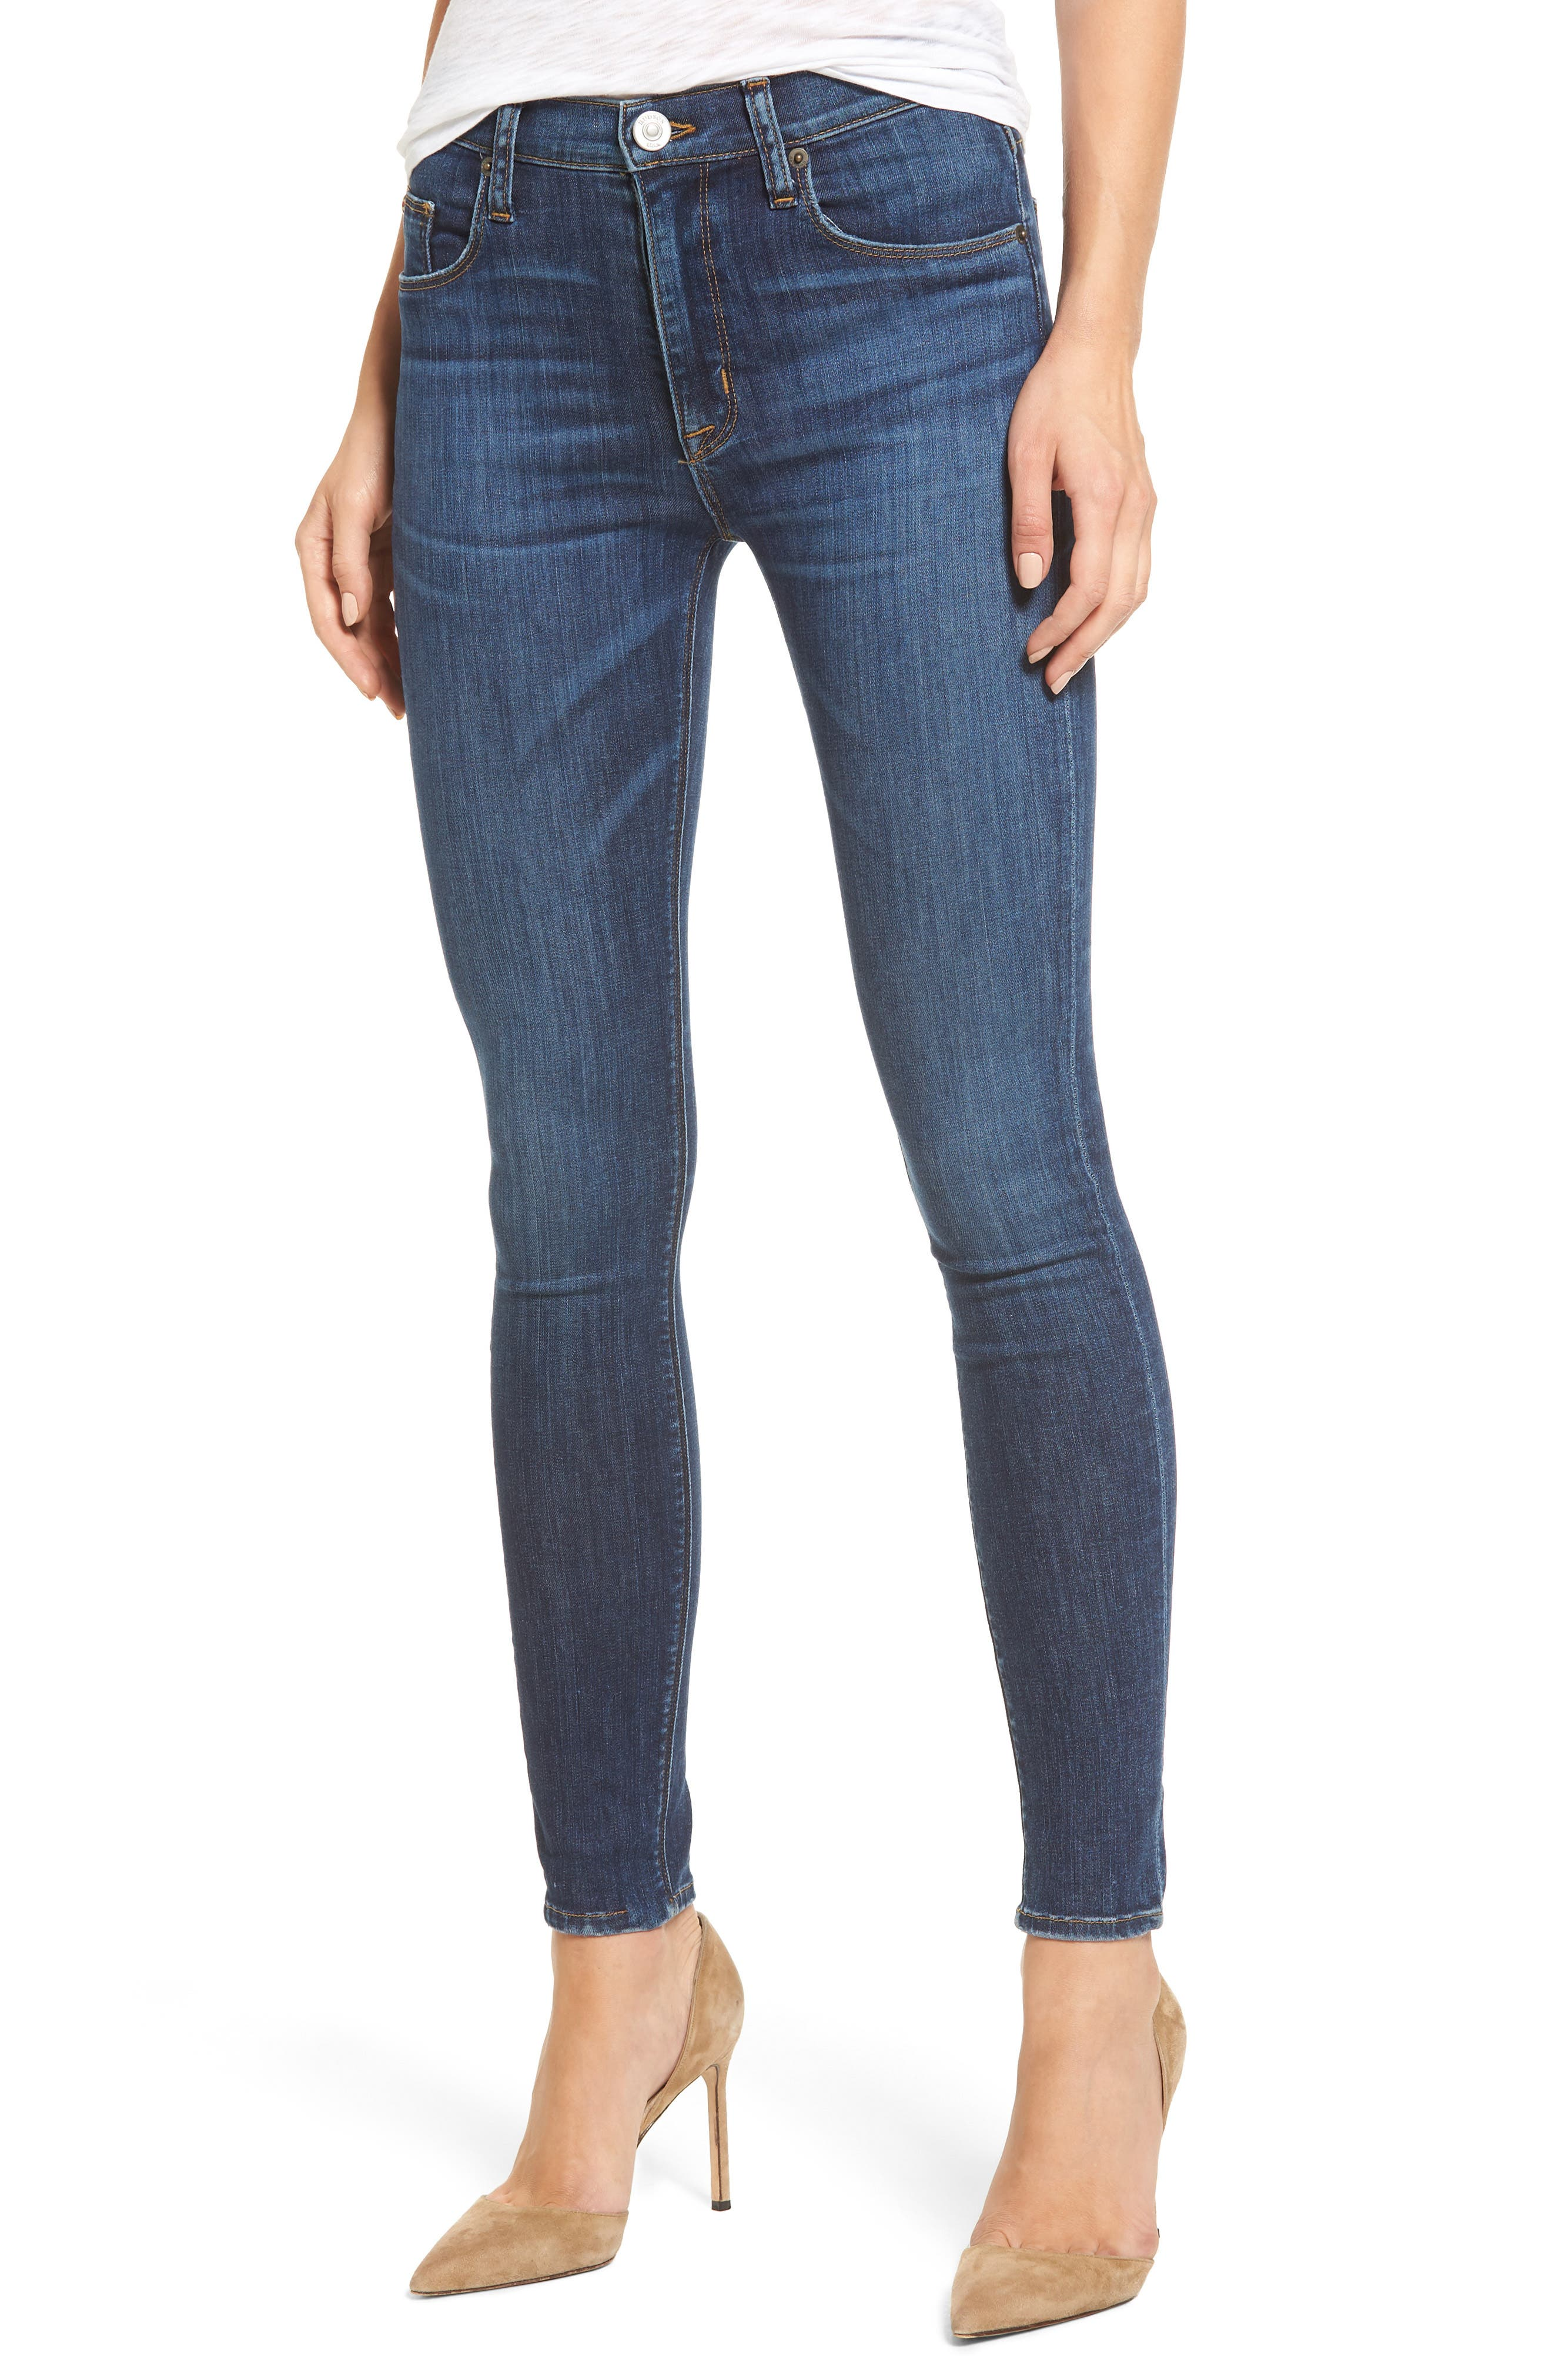 'Barbara' High Rise Super Skinny Jeans,                         Main,                         color, 401